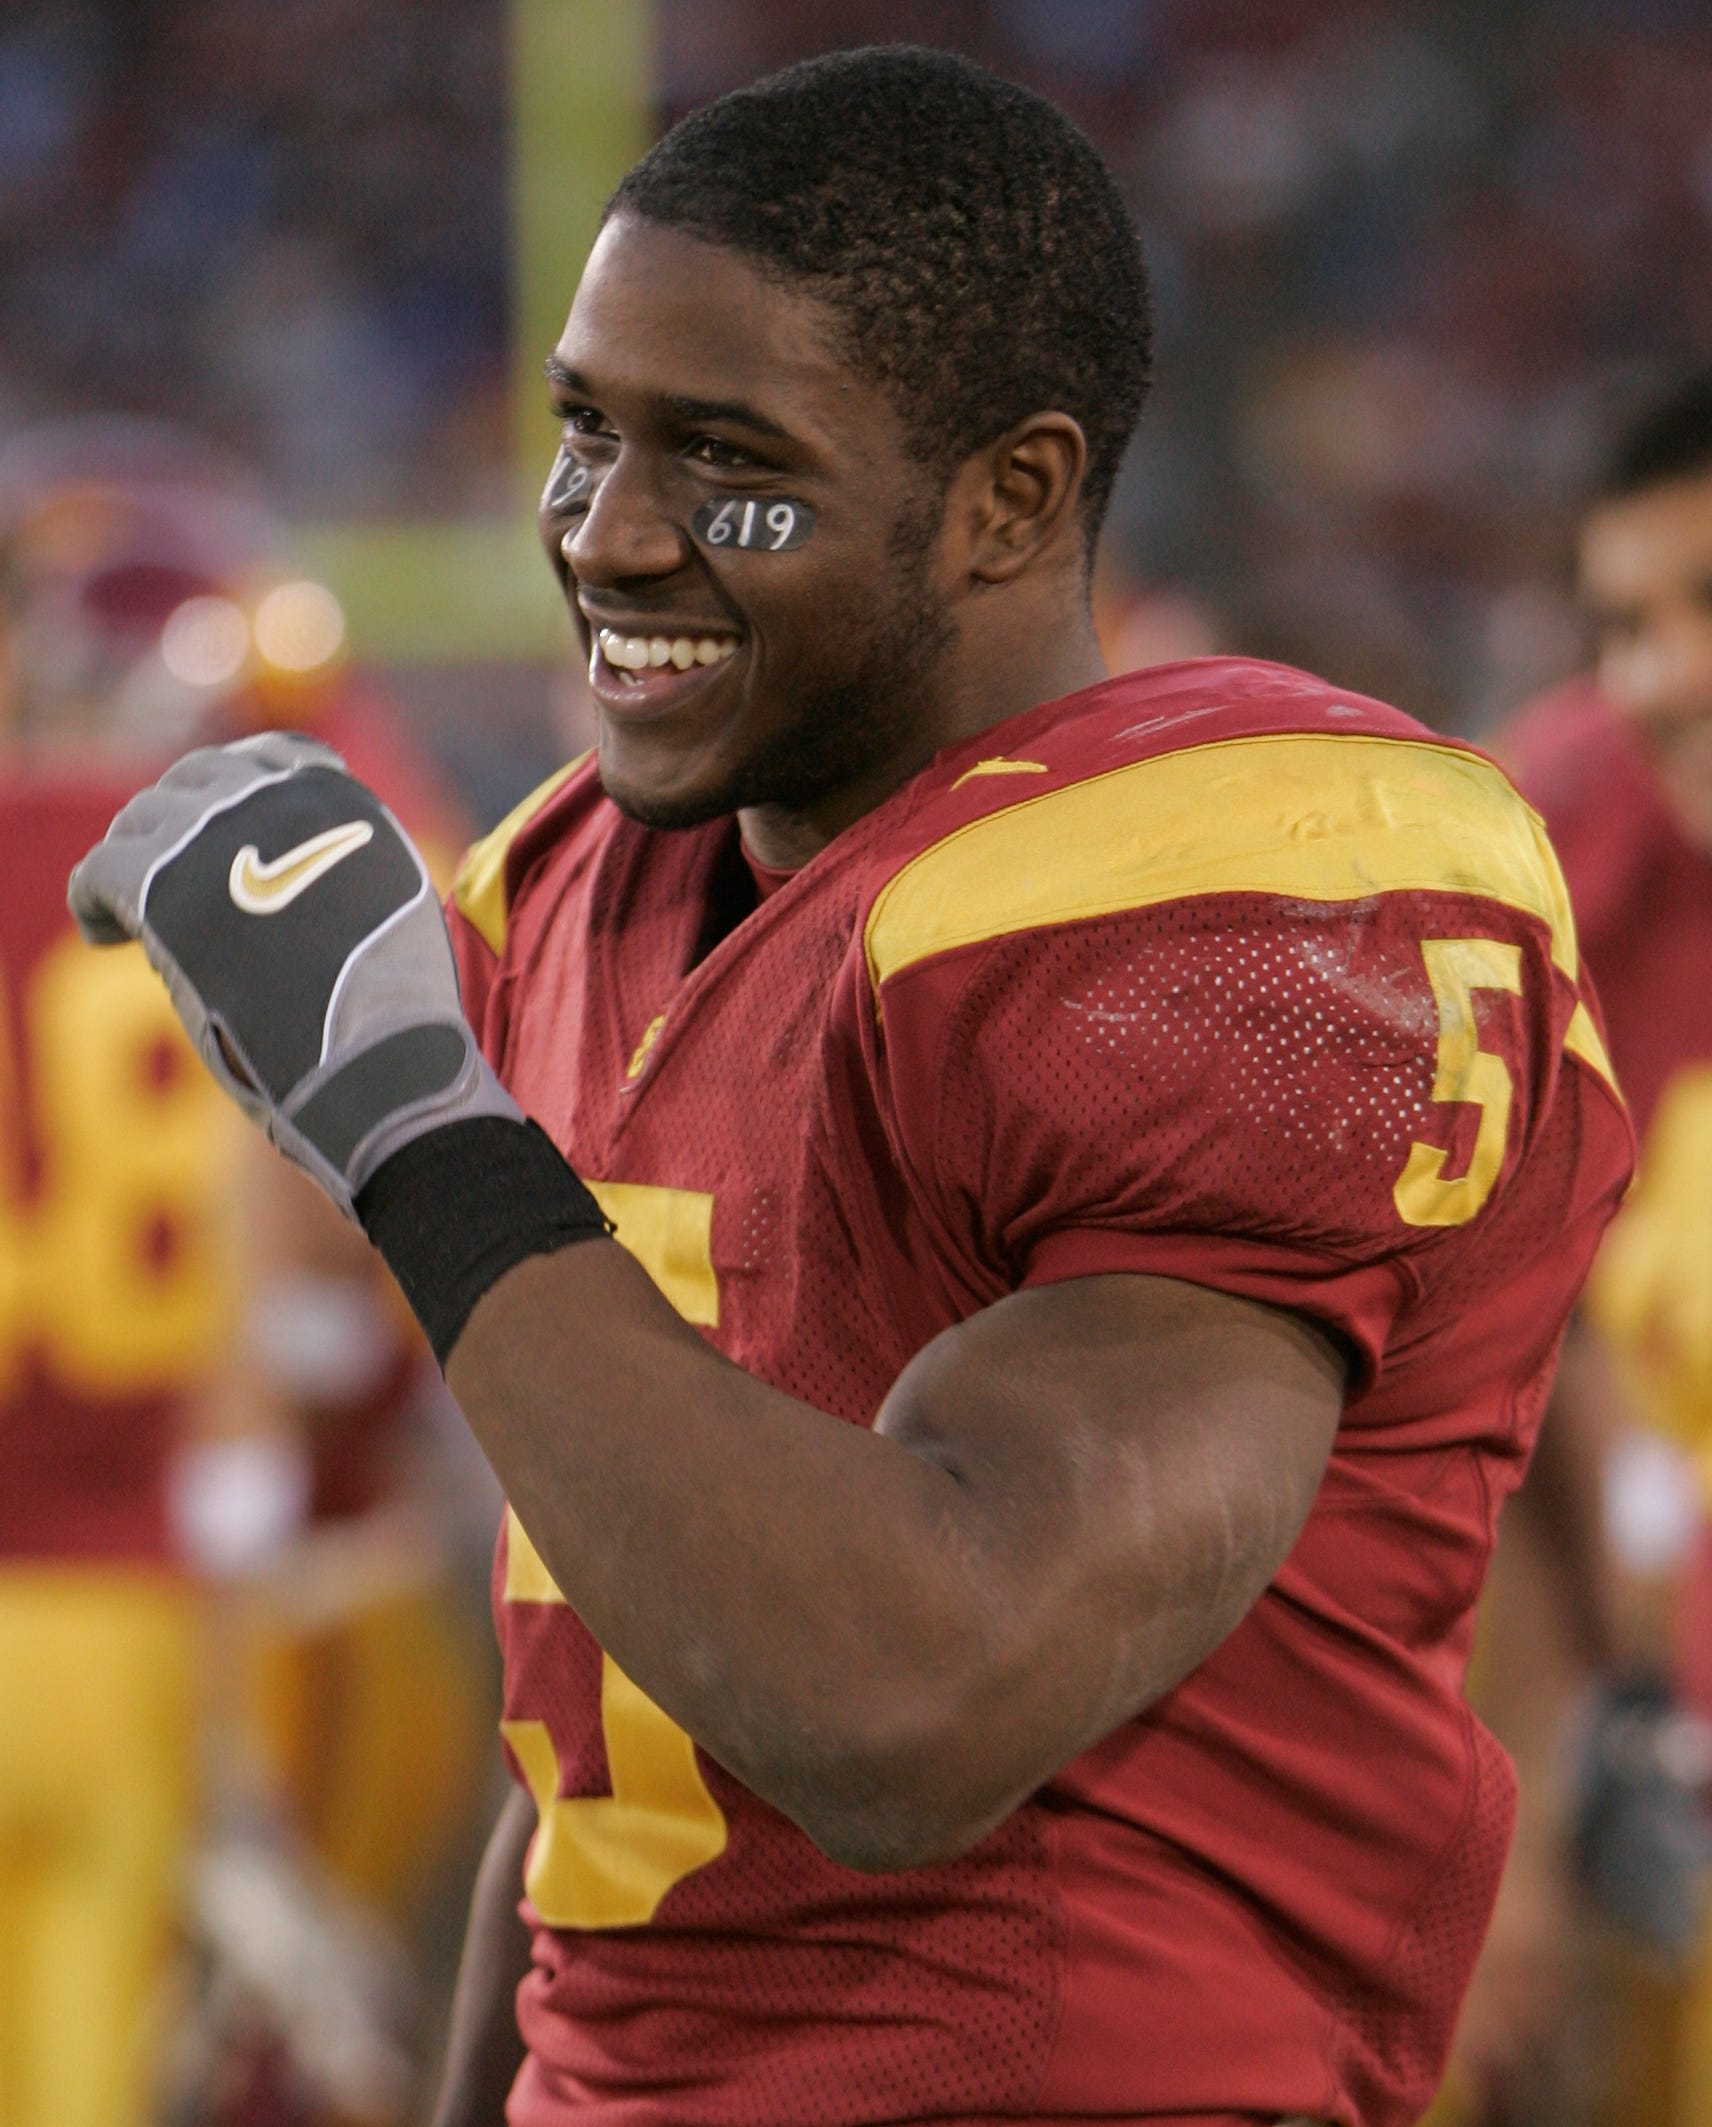 Reggie Bush after President Trump celebrates Clemson with fast food: 'Huge slap in the face'